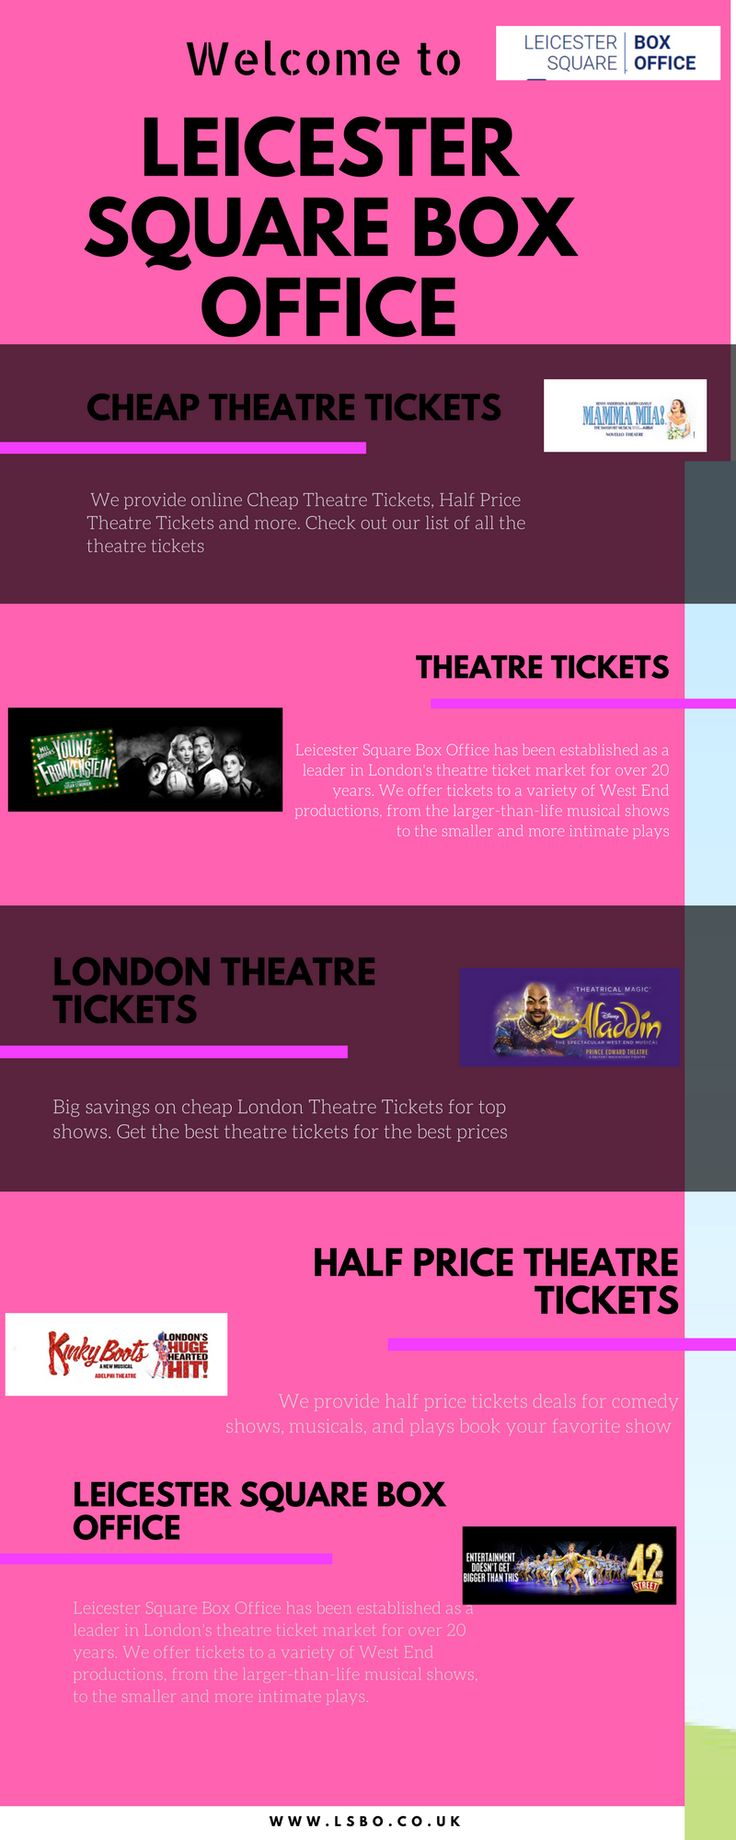 Get London theatre tickets for a wide range West End musicals and plays. get the perfect show and book official London tickets to plan your next theatre trip. For more information: http://www.lsbo.co.uk/